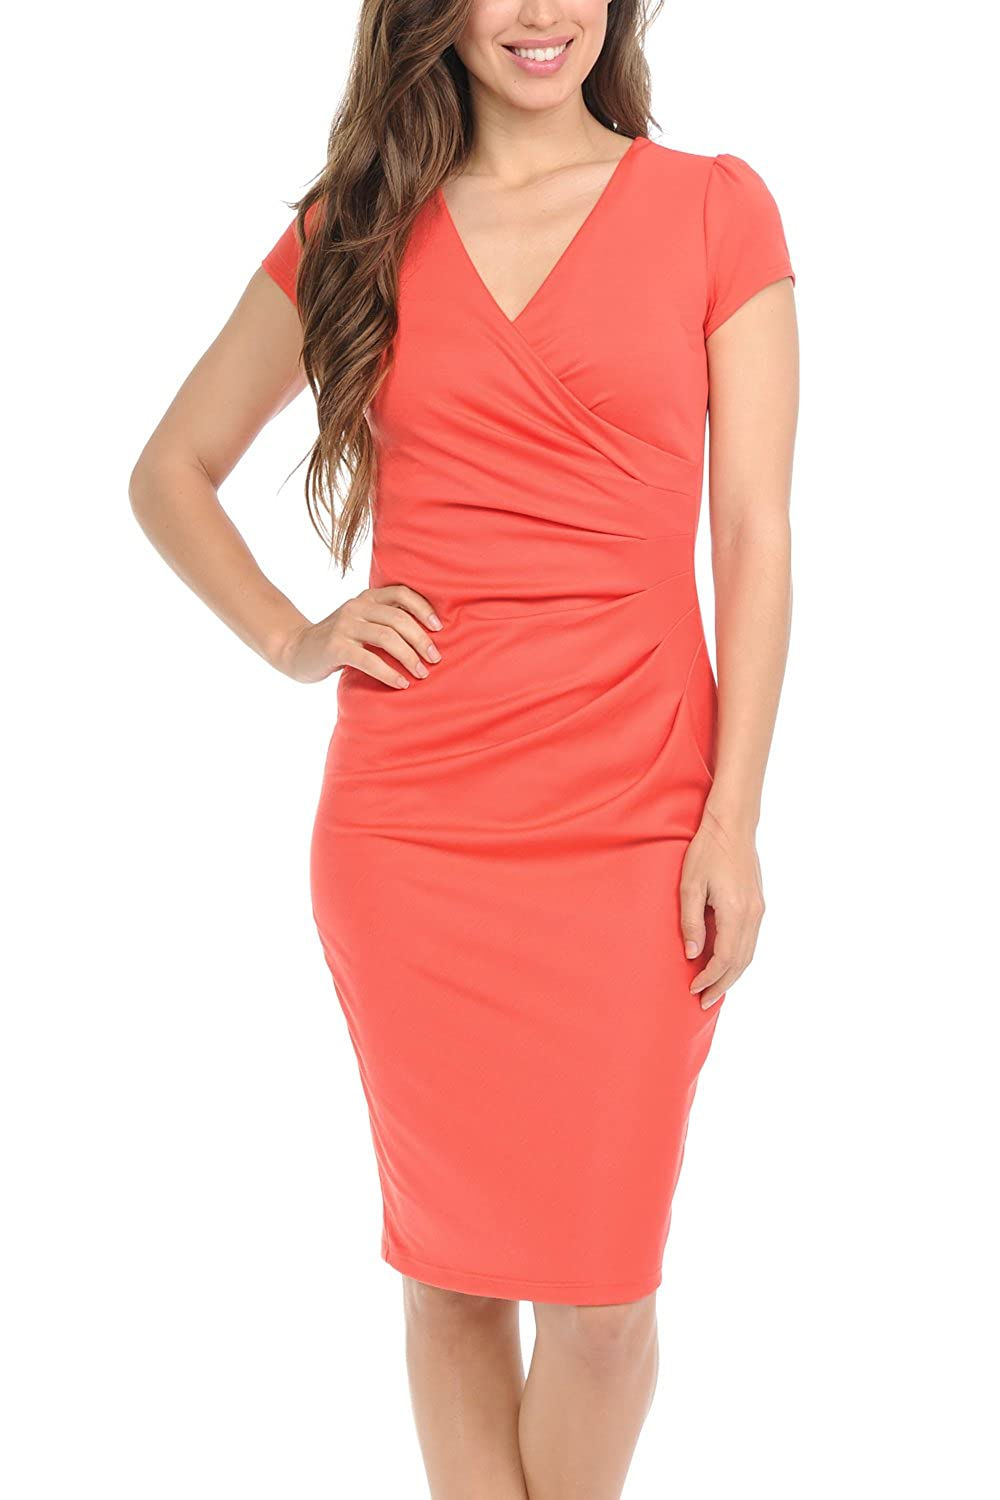 Coral Auliné Collection Womens VNeck Zip Up Work Office Career Side Wrap Sheath Dress